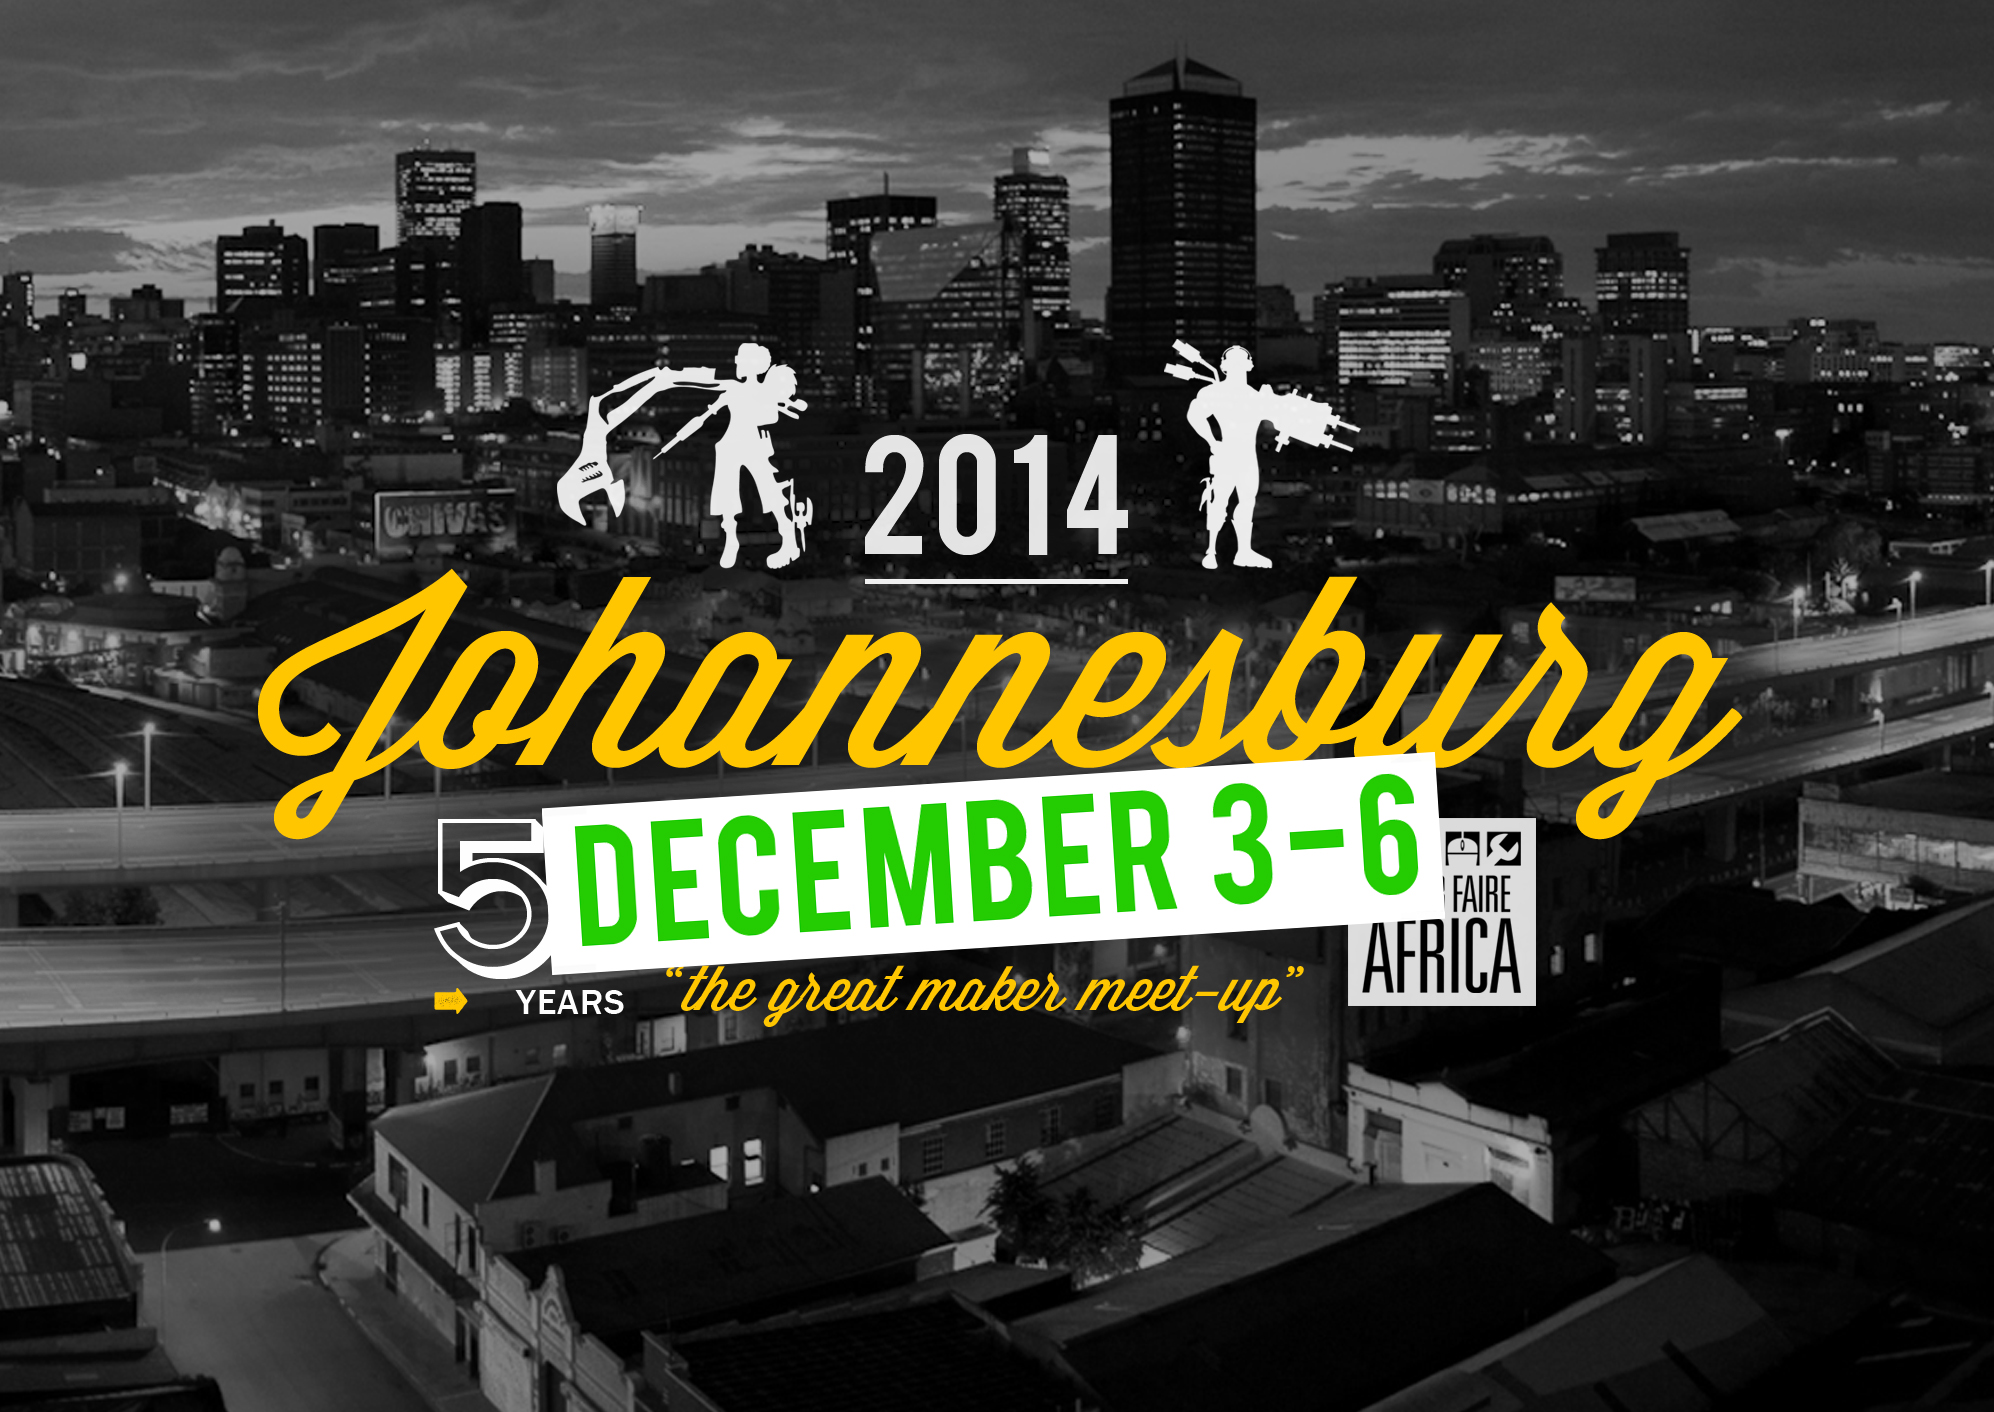 Maker Faire Africa 2014: JOHANNESBURG | DECEMBER 3-6TH